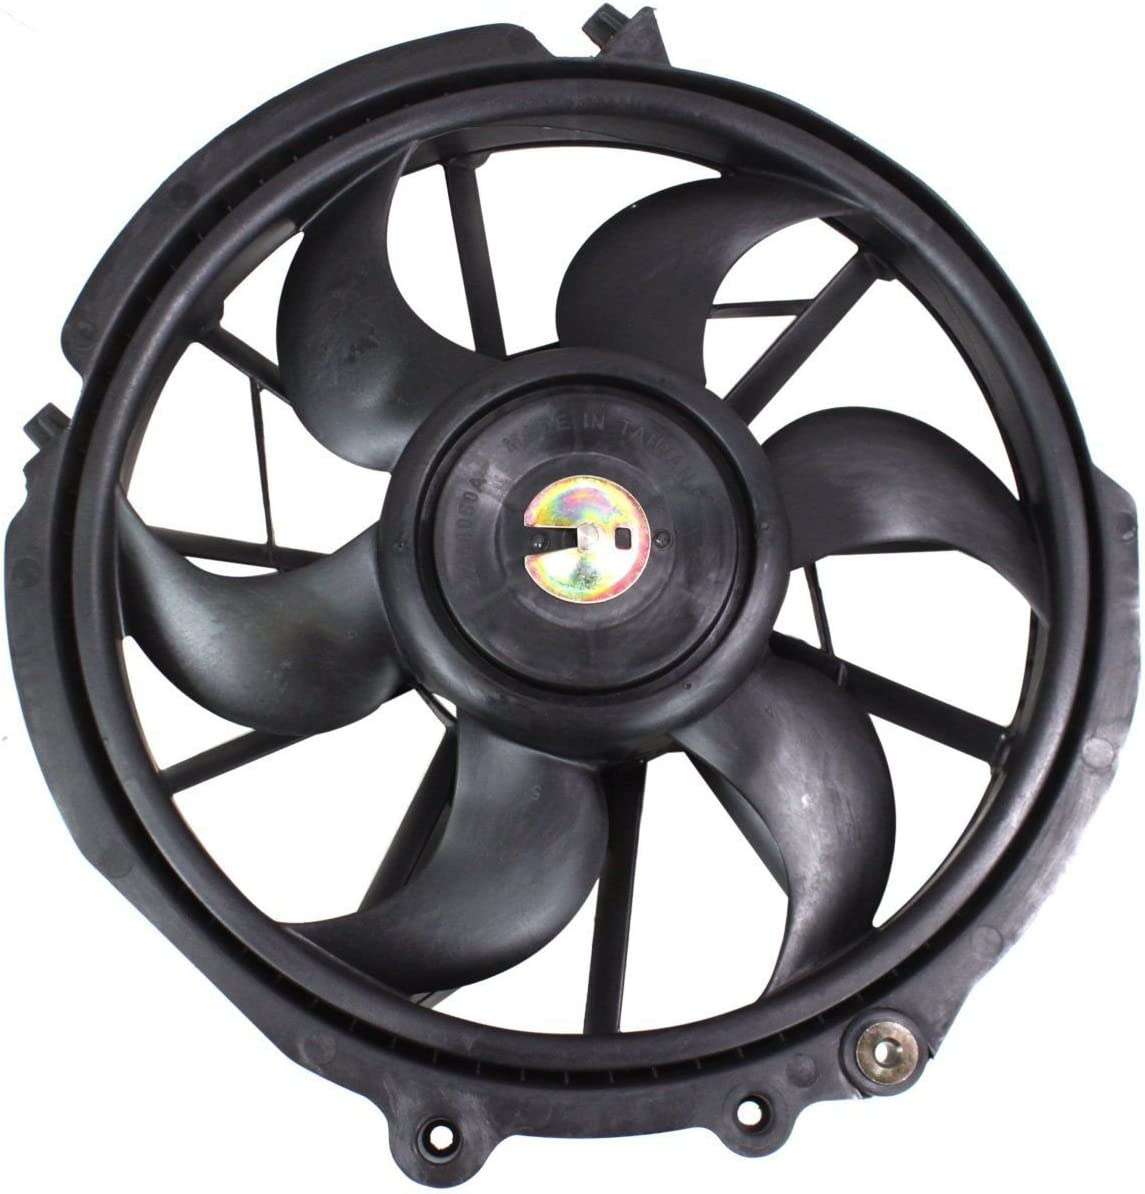 Spasm price New A C Condenser Fan Assembly 1996-2007 Mercu Ford Large special price Taurus For